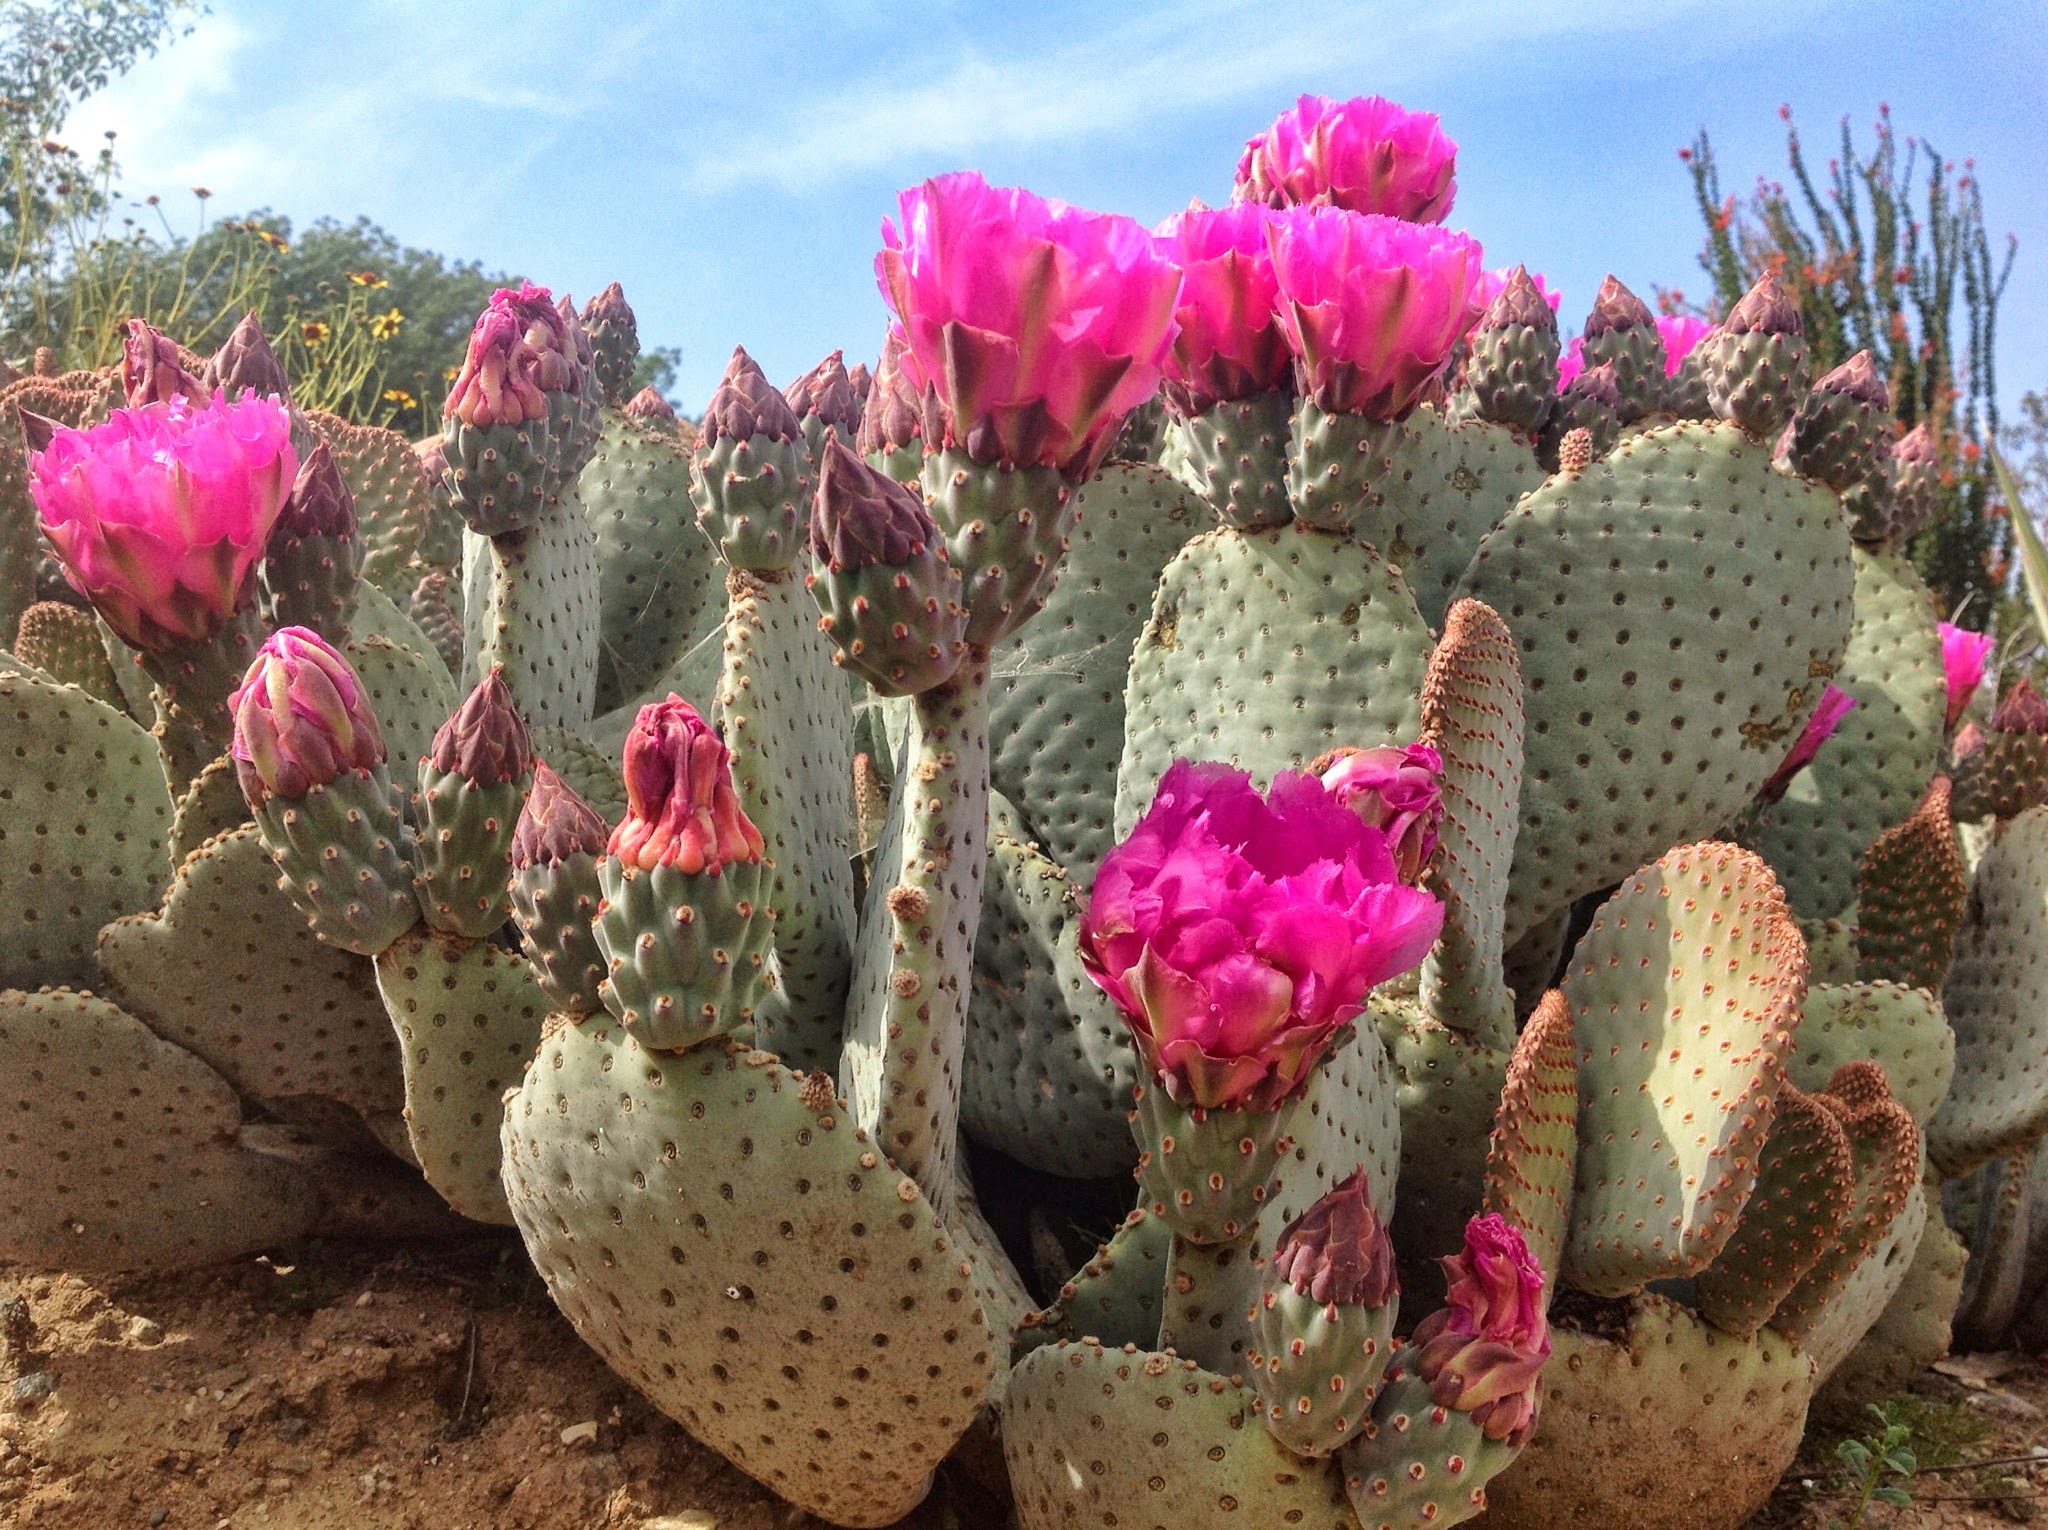 Beavertail Prickly Pear Cactus.jpg